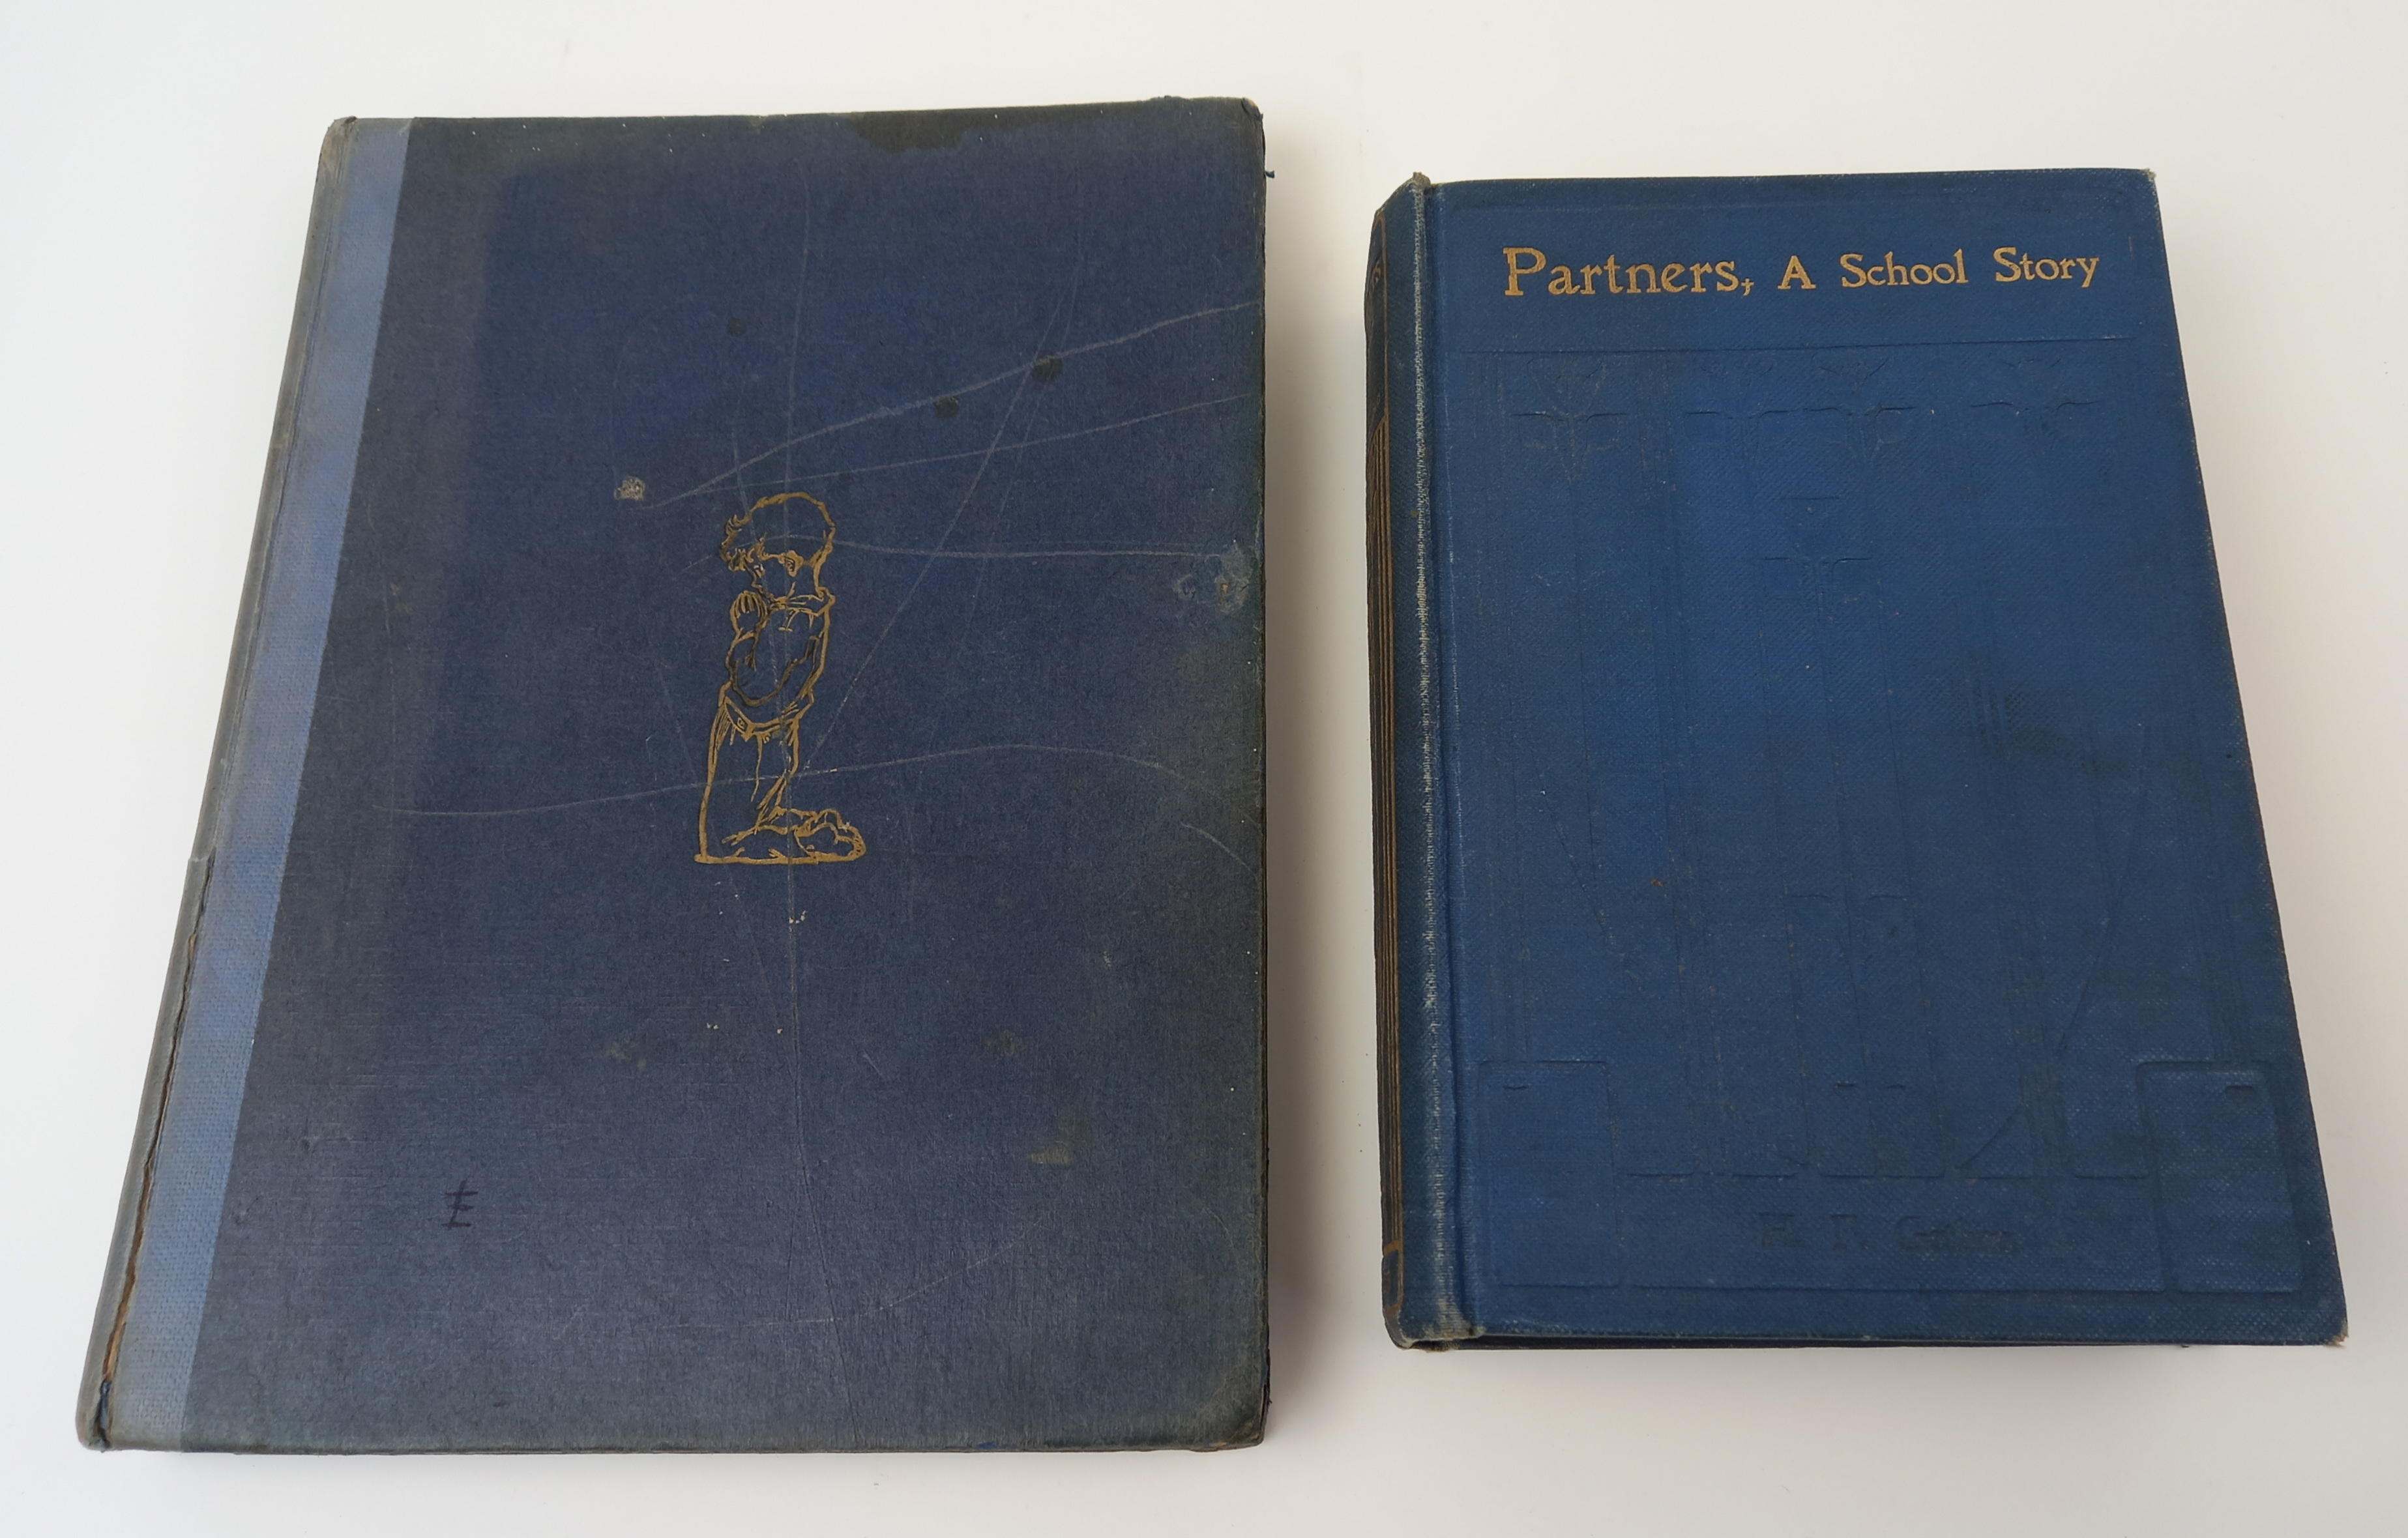 Hazelwood (C) et al, THE PAGEANT, 1897 edition, illustrated red boards, illustrated endpapers, - Image 13 of 16